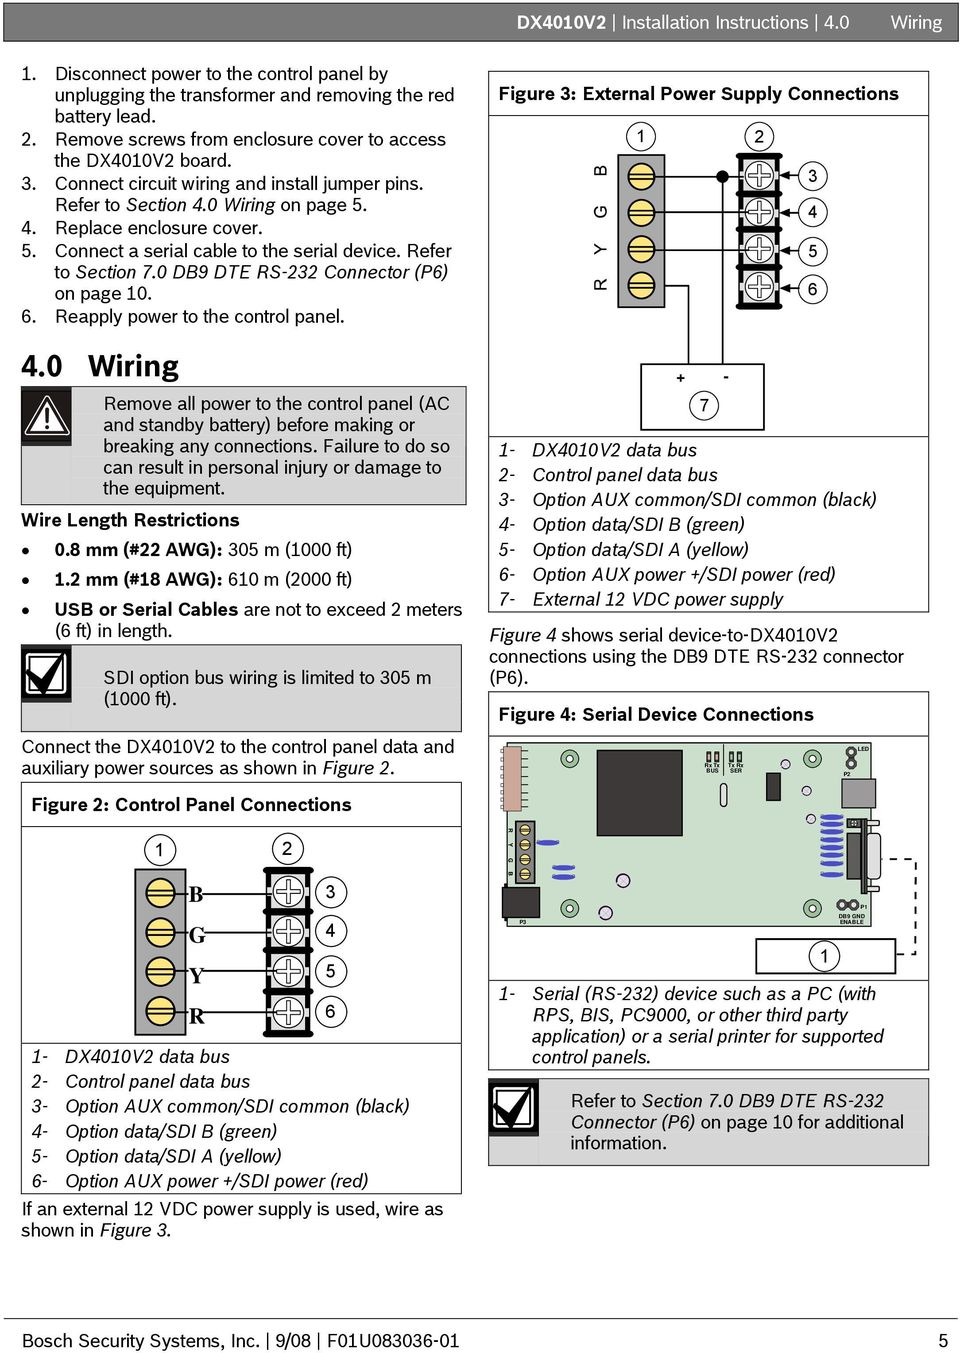 Attractive Serial Port Wiring Diagram Mold - Wiring Diagram Ideas ...